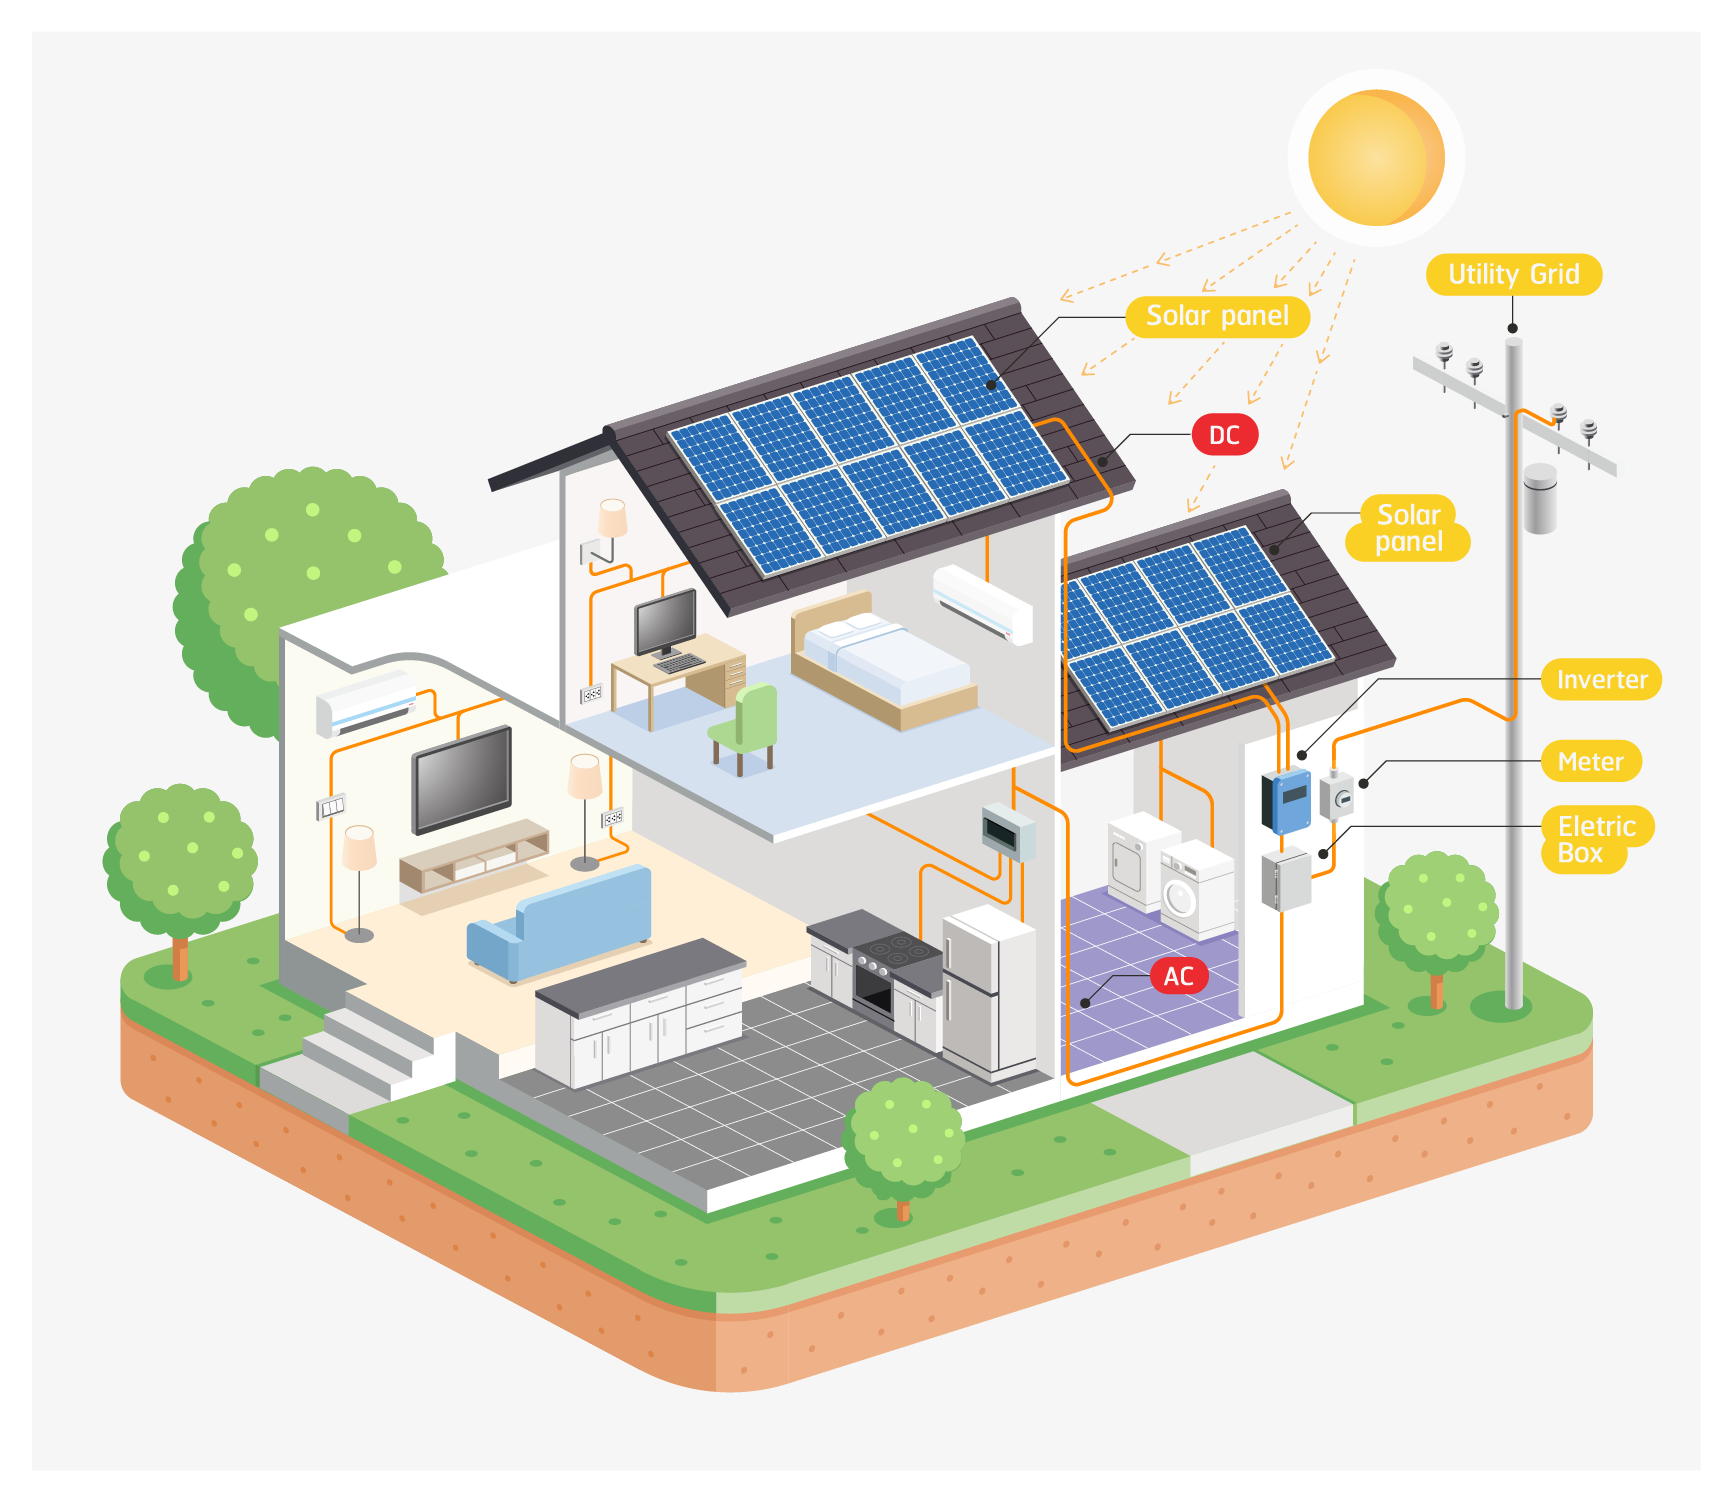 Wiring Solar Panels To Home Grid